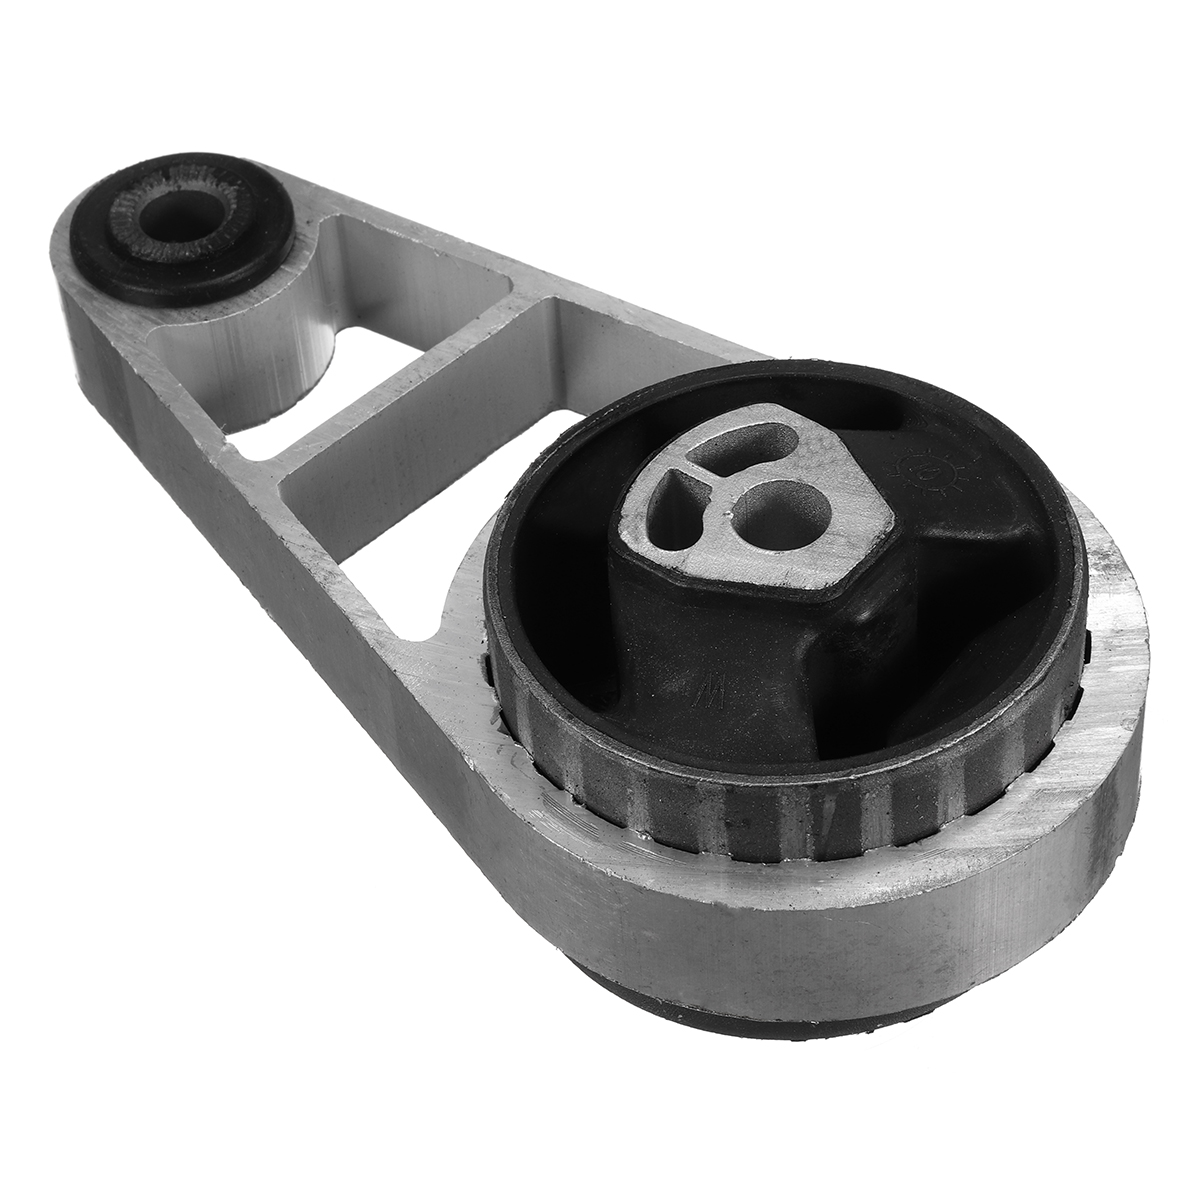 Metal Manual Lower Rear Engine Mount For Rover 75 Tourer / MG ZT ZT-T 2.0 CDTI